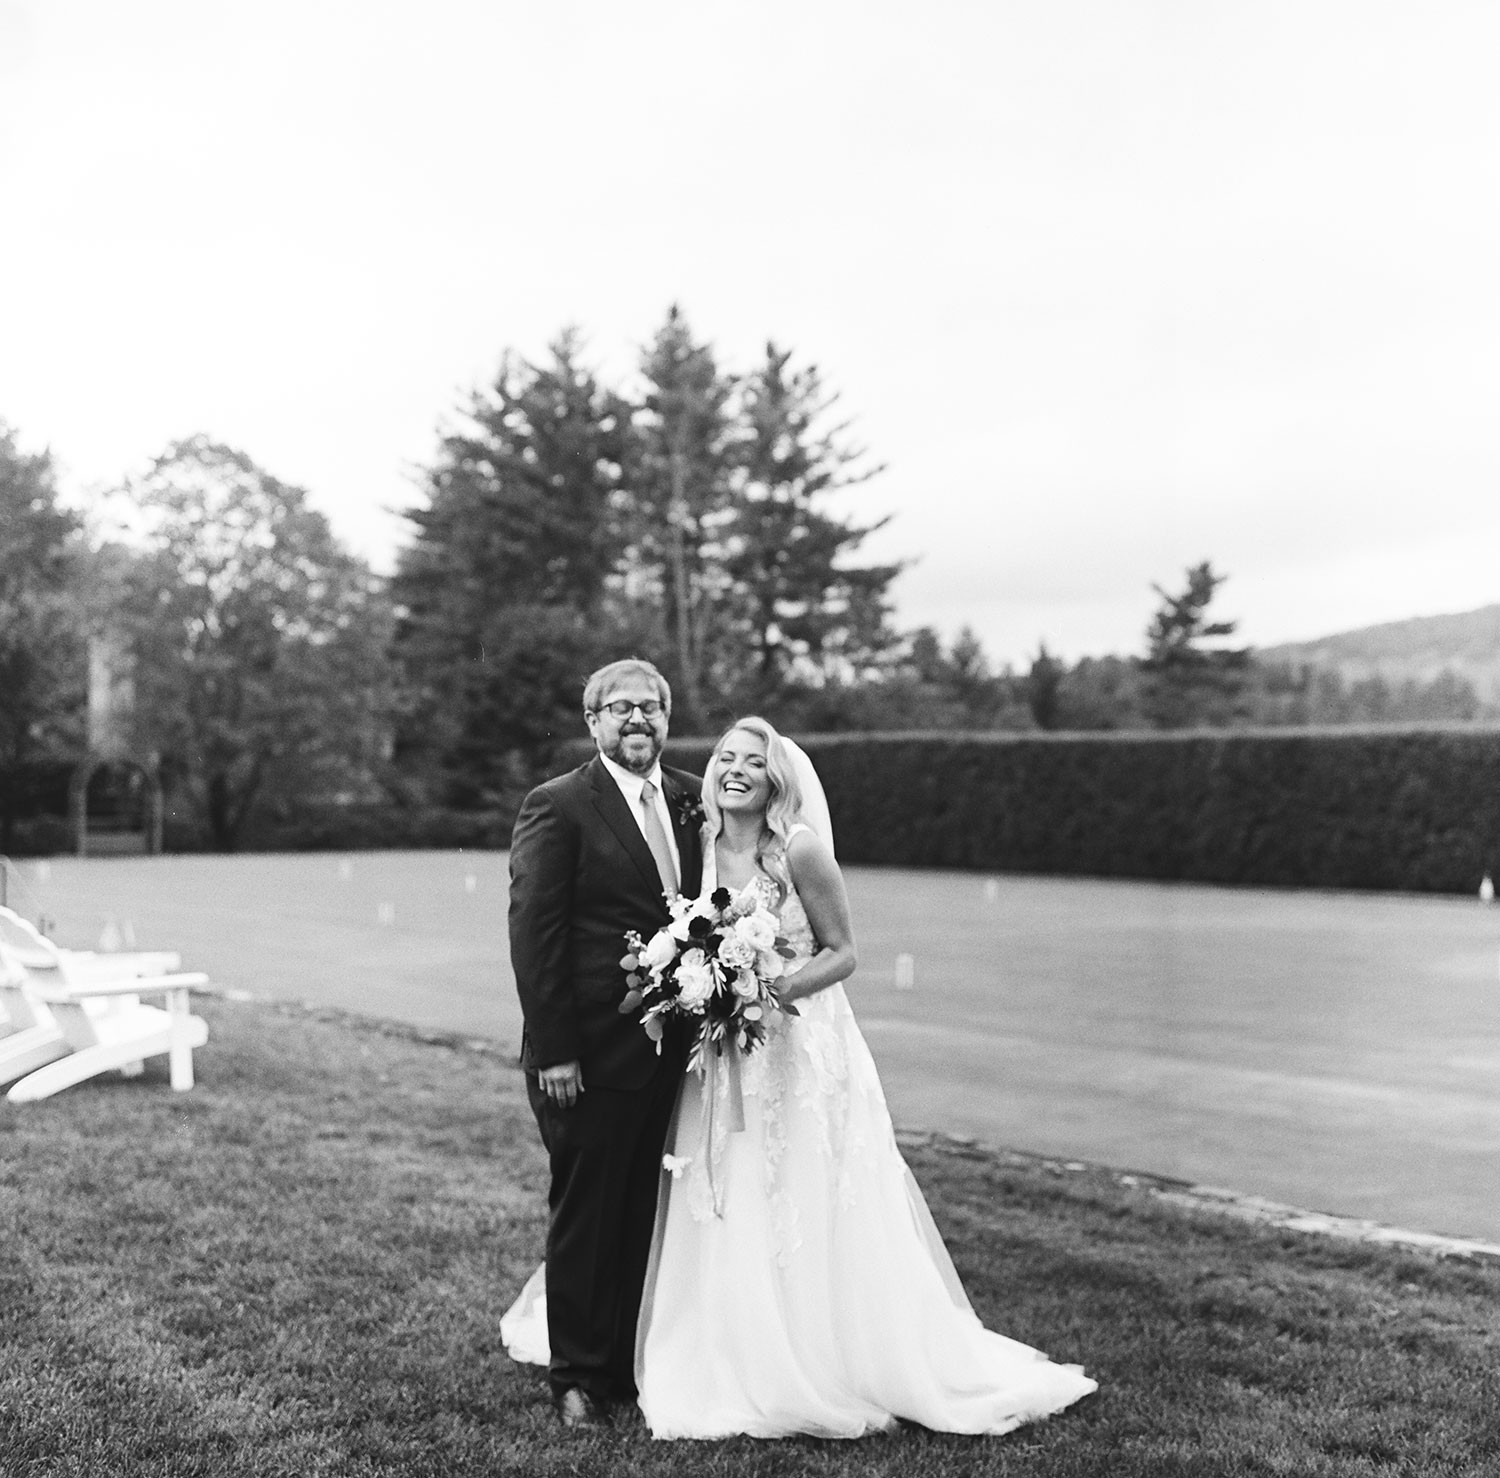 Cashiers Wedding Photographer Virgil Bunao photographers luxury fine art weddings in Highlands Cashiers